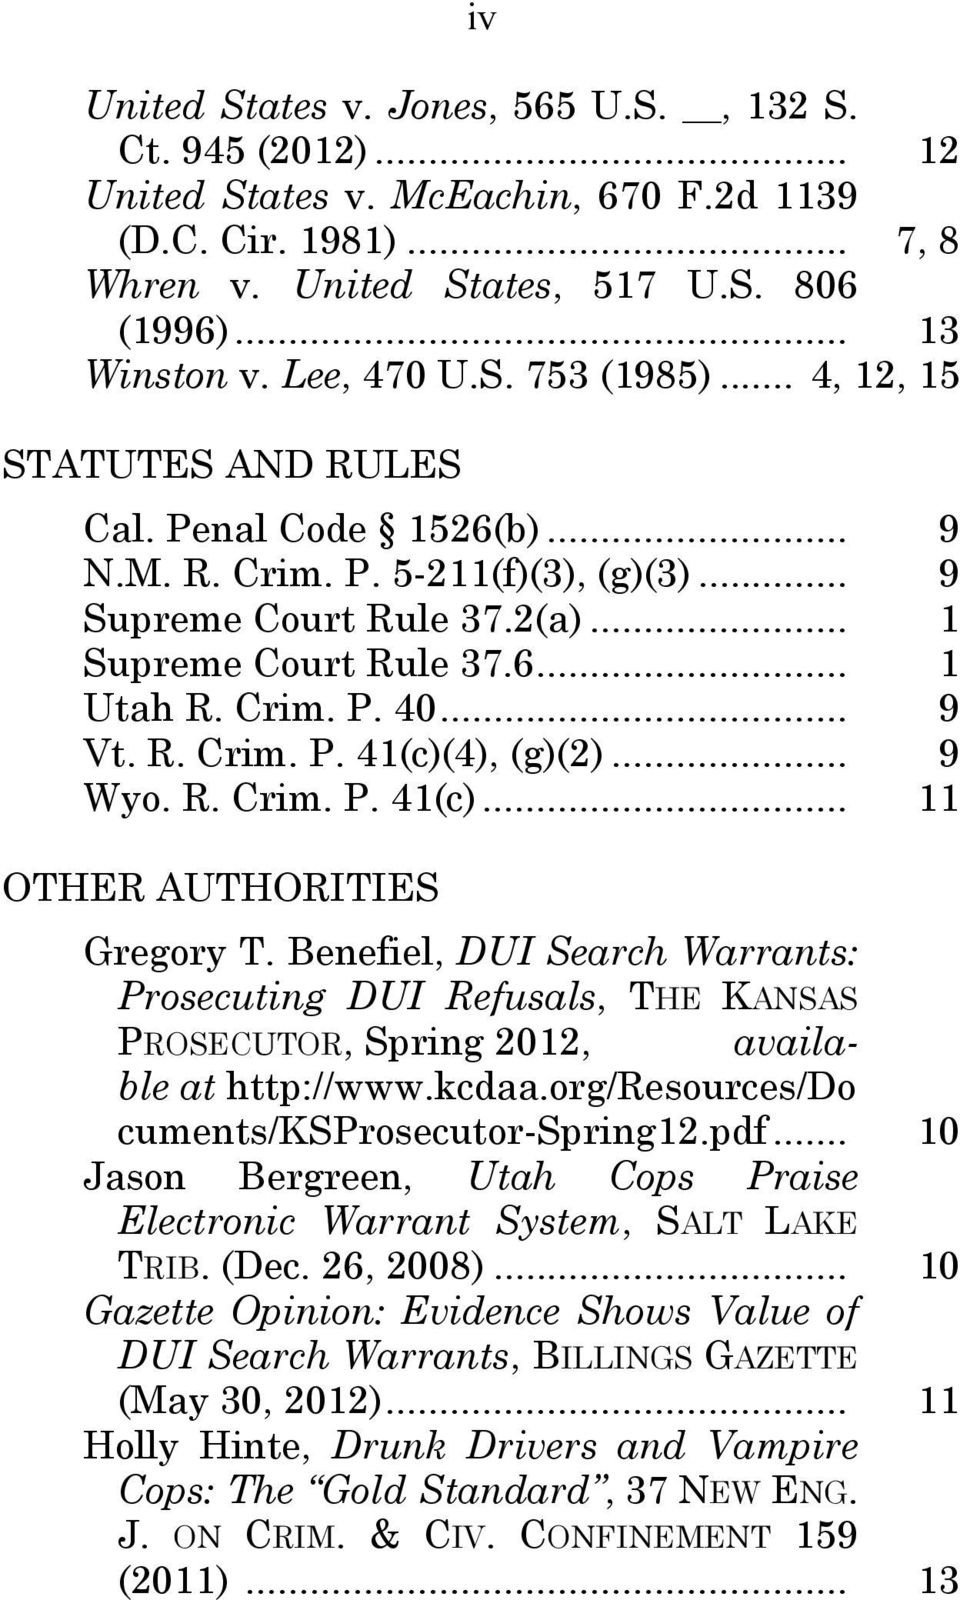 Crim. P. 40... 9 Vt. R. Crim. P. 41(c)(4), (g)(2)... 9 Wyo. R. Crim. P. 41(c)... 11 OTHER AUTHORITIES Gregory T.